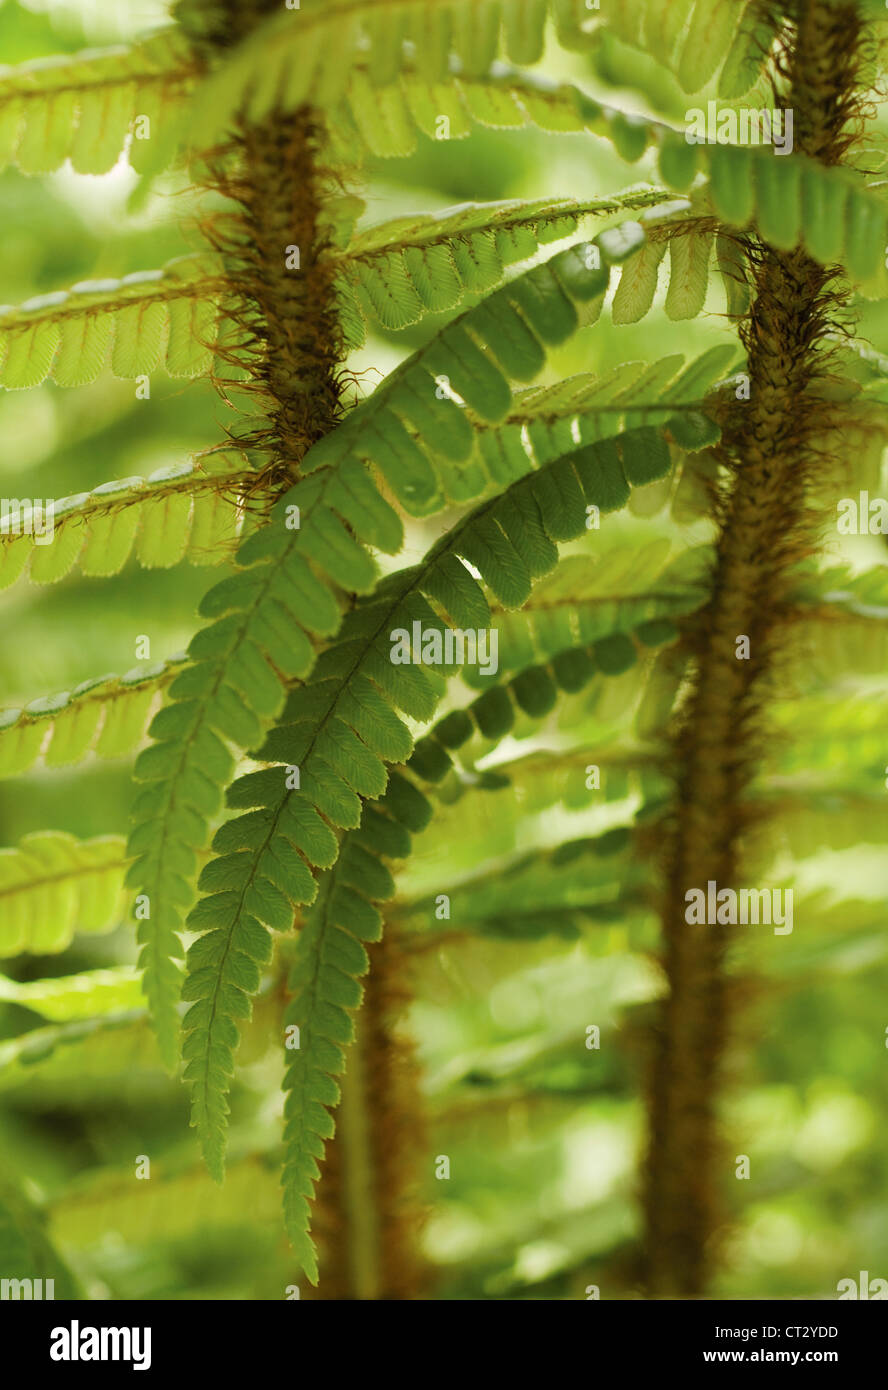 Dryopteris wallichiana, Fern, Wallich's wood fern, close up detail of green fronds. - Stock Image